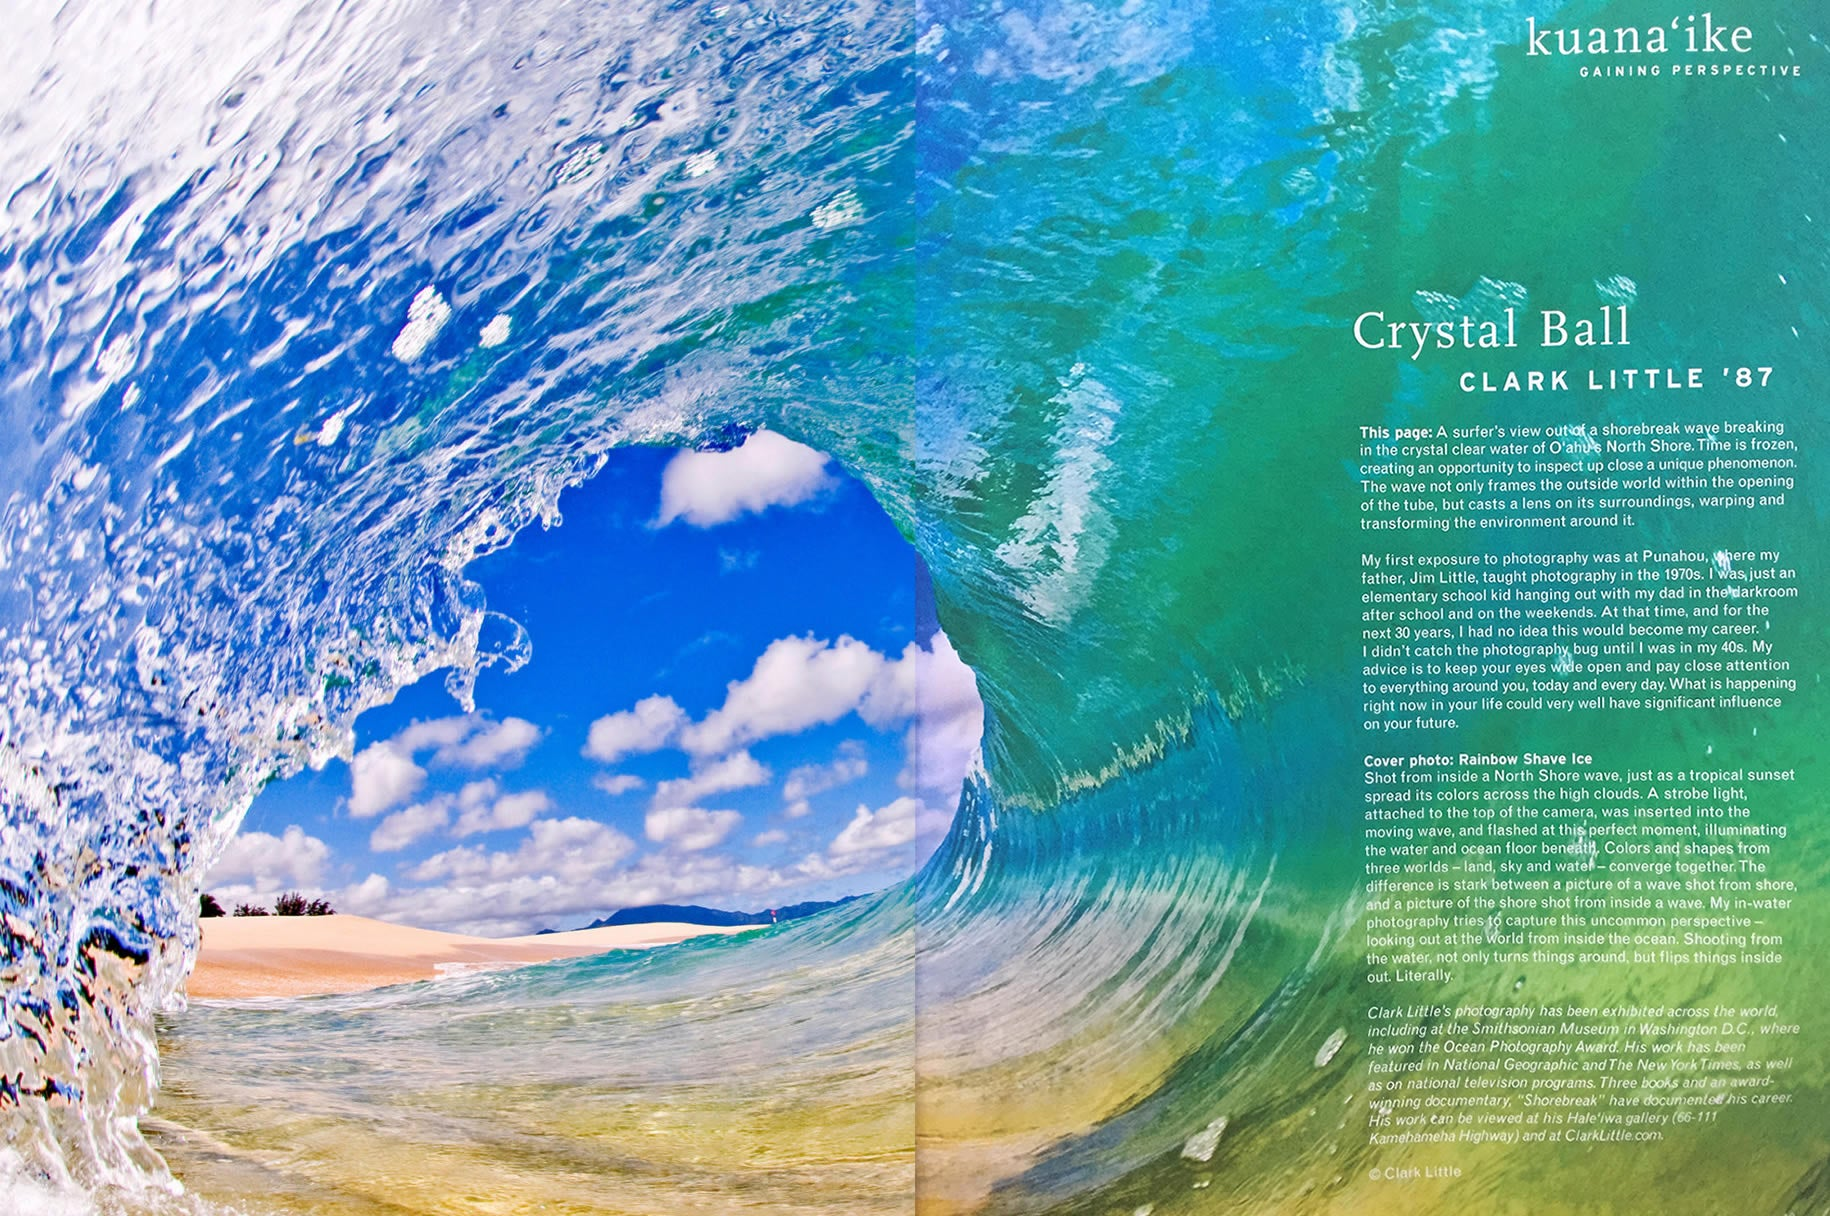 Punahou Bulletin - Inside page with Crystal Ball image